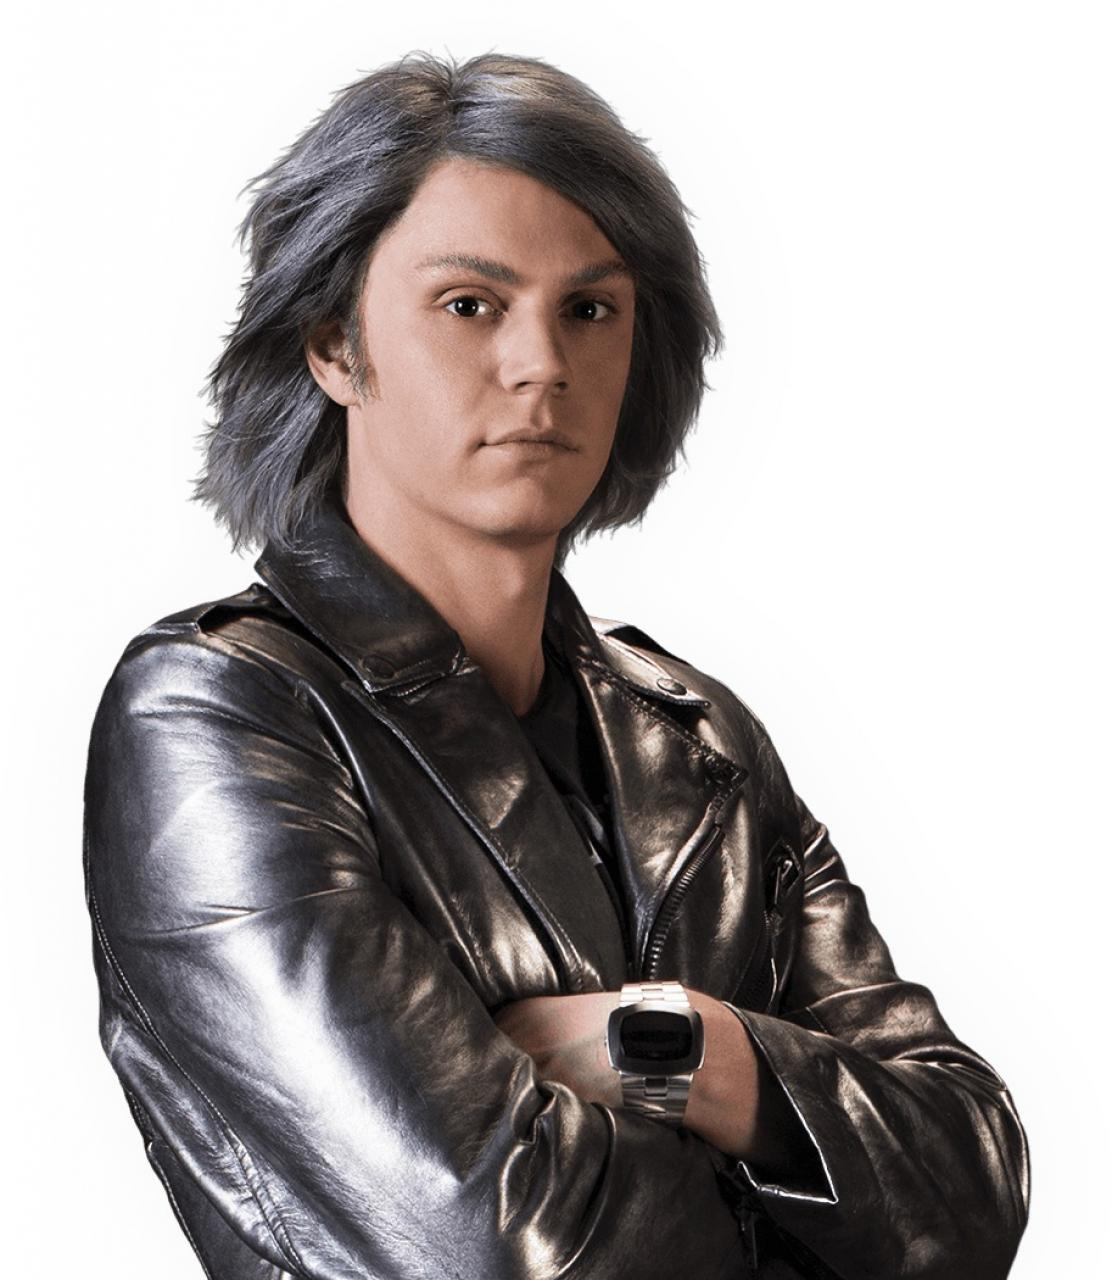 X-Men Days of Future Past character photo - Evan Peters as ... X Men Evolution Iceman